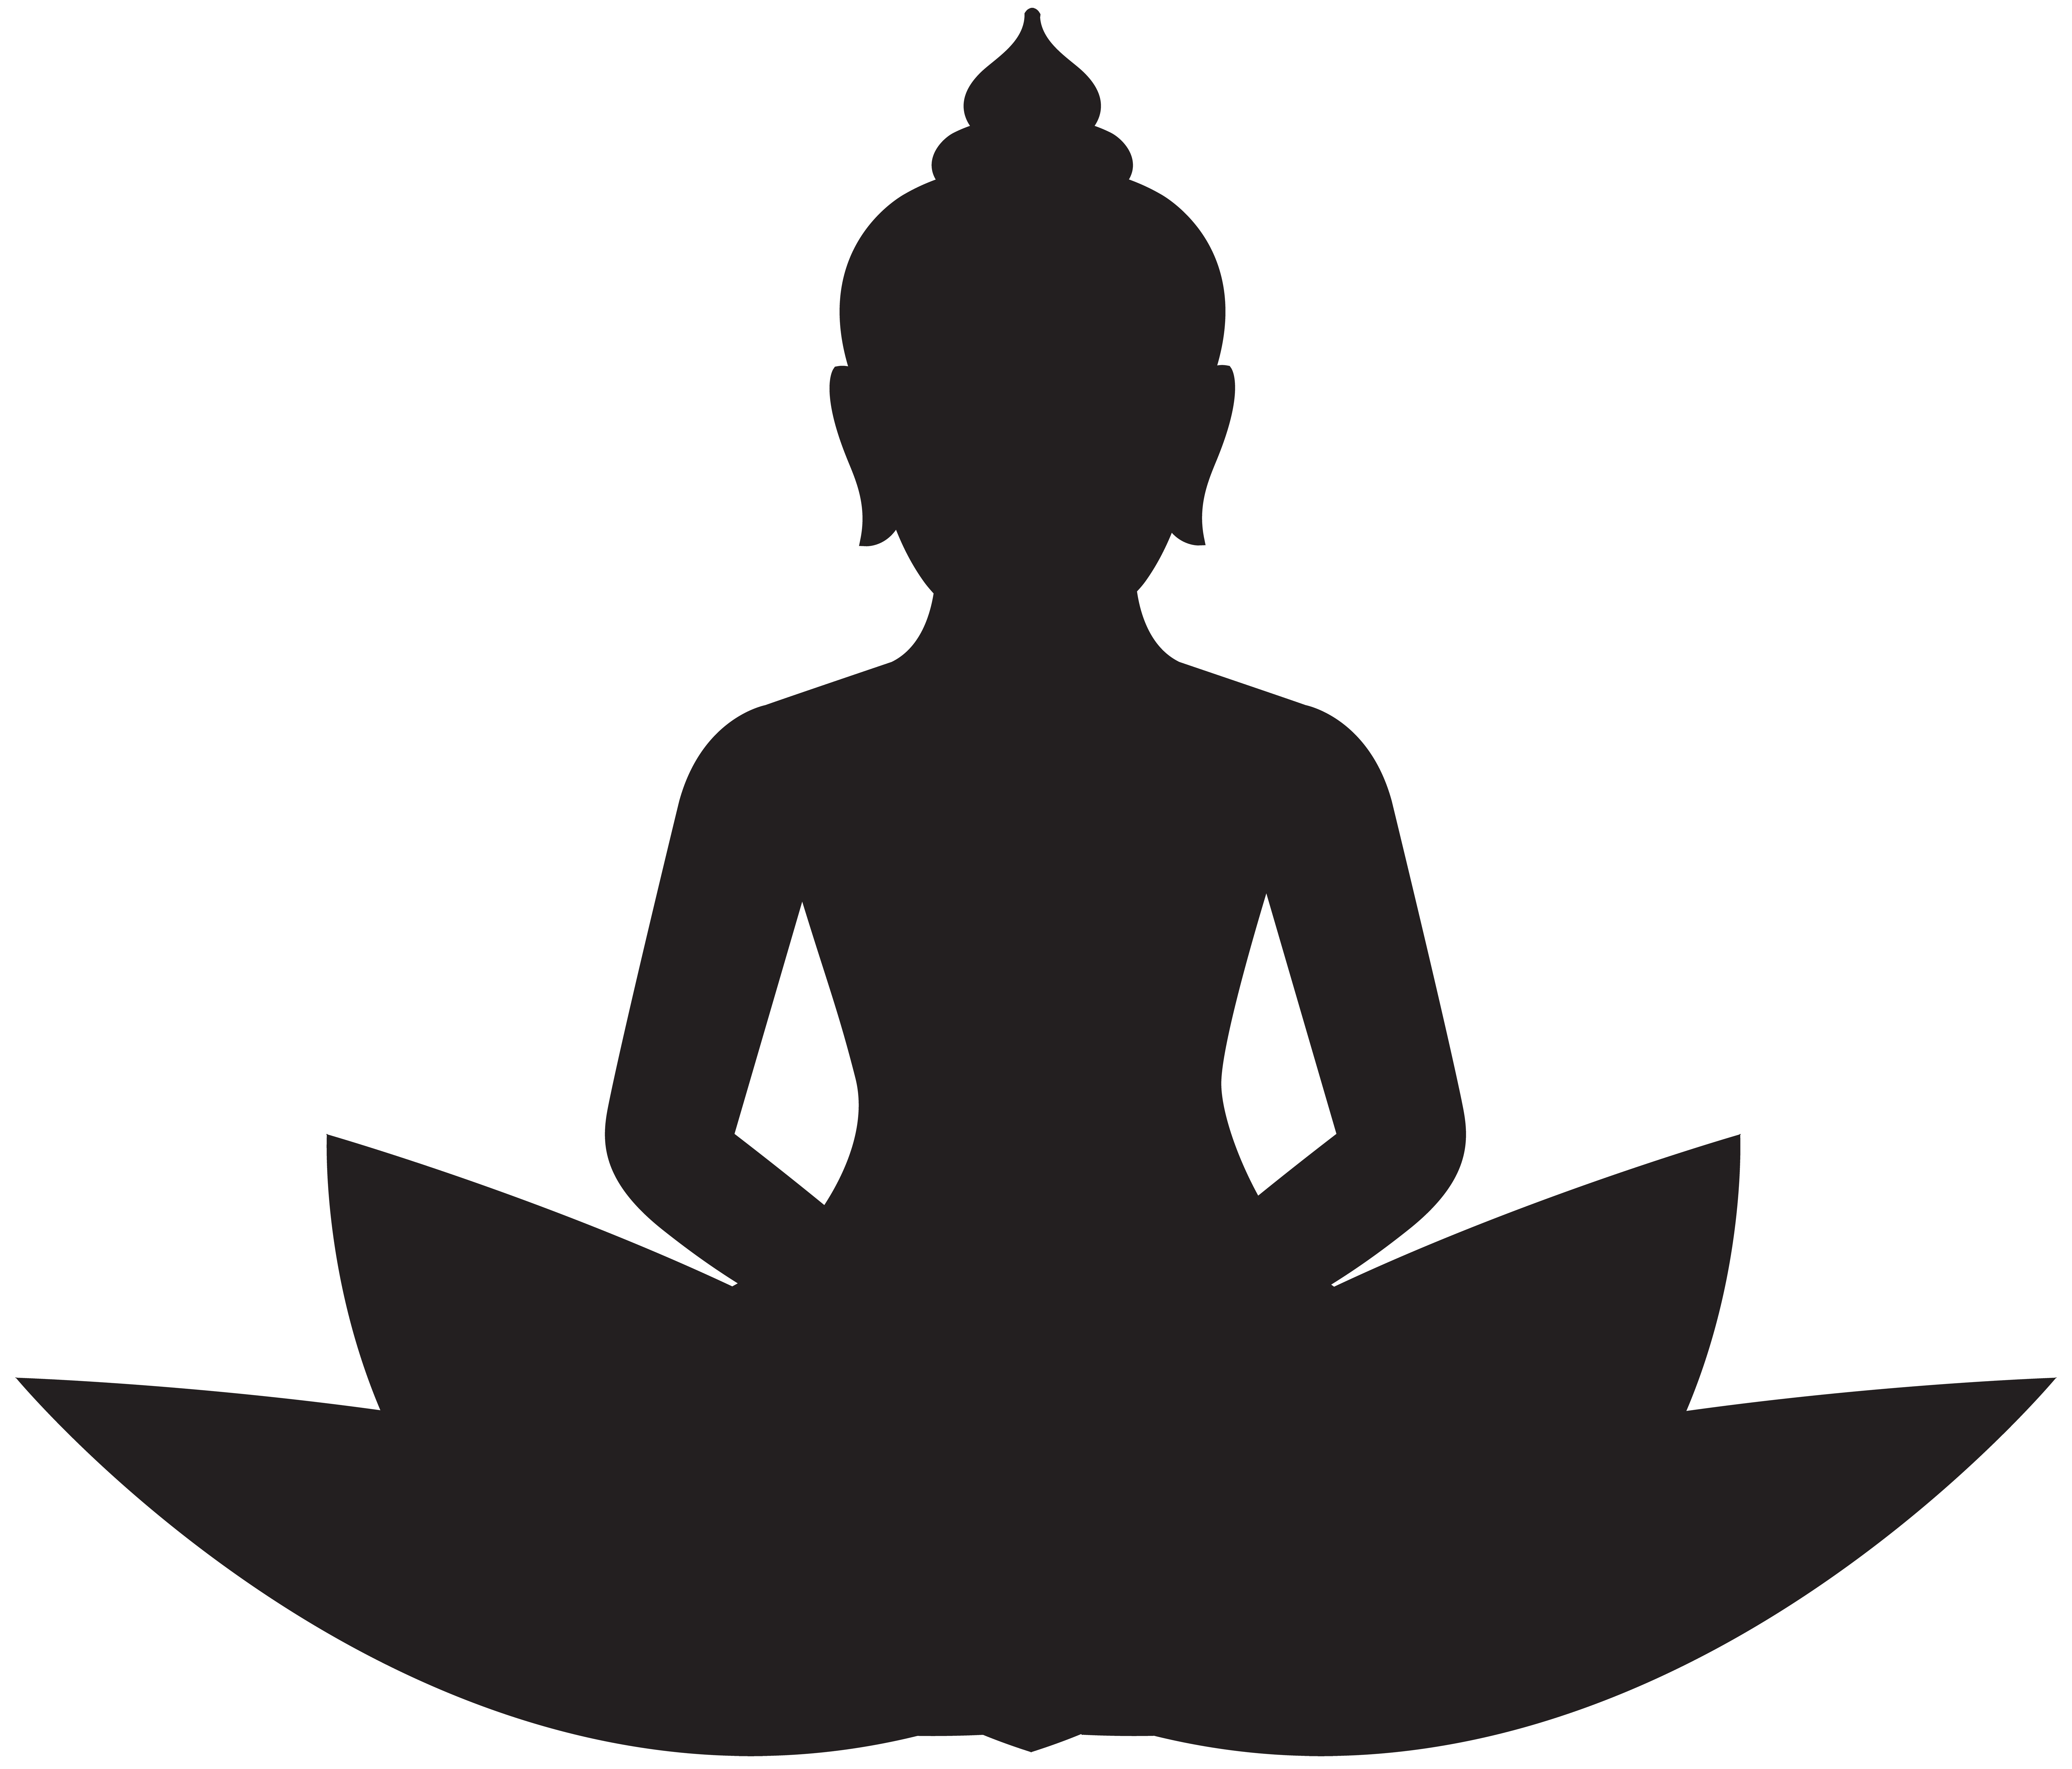 Buddha clipart. Meditating silhouette png clip